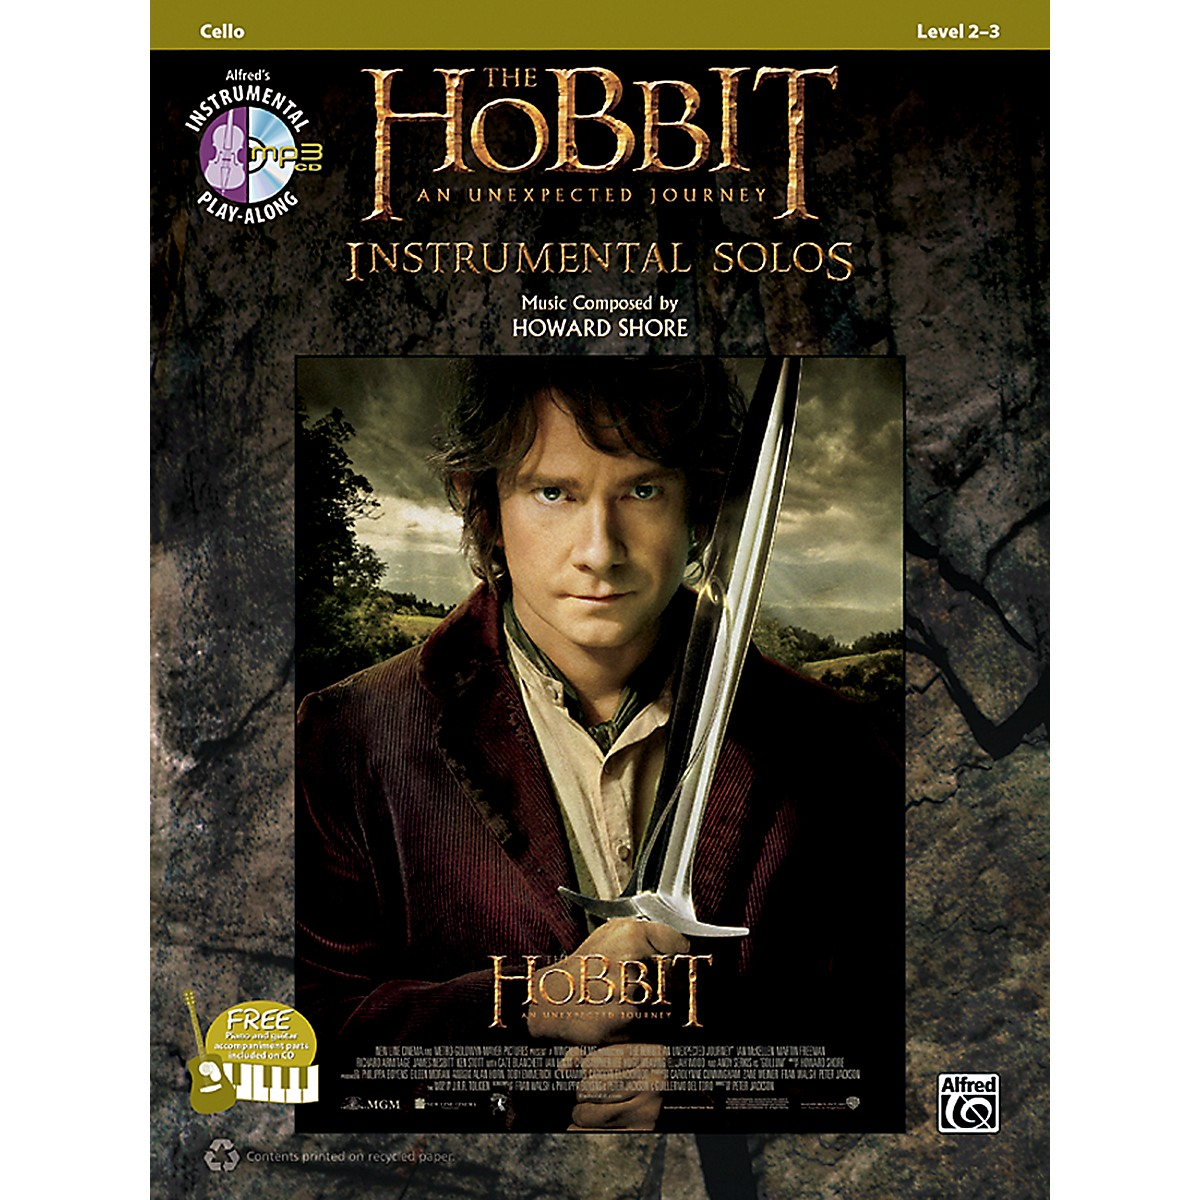 Alfred The Hobbit: An Unexpected Journey Instrumental Solos for Strings Cello (Book/CD)